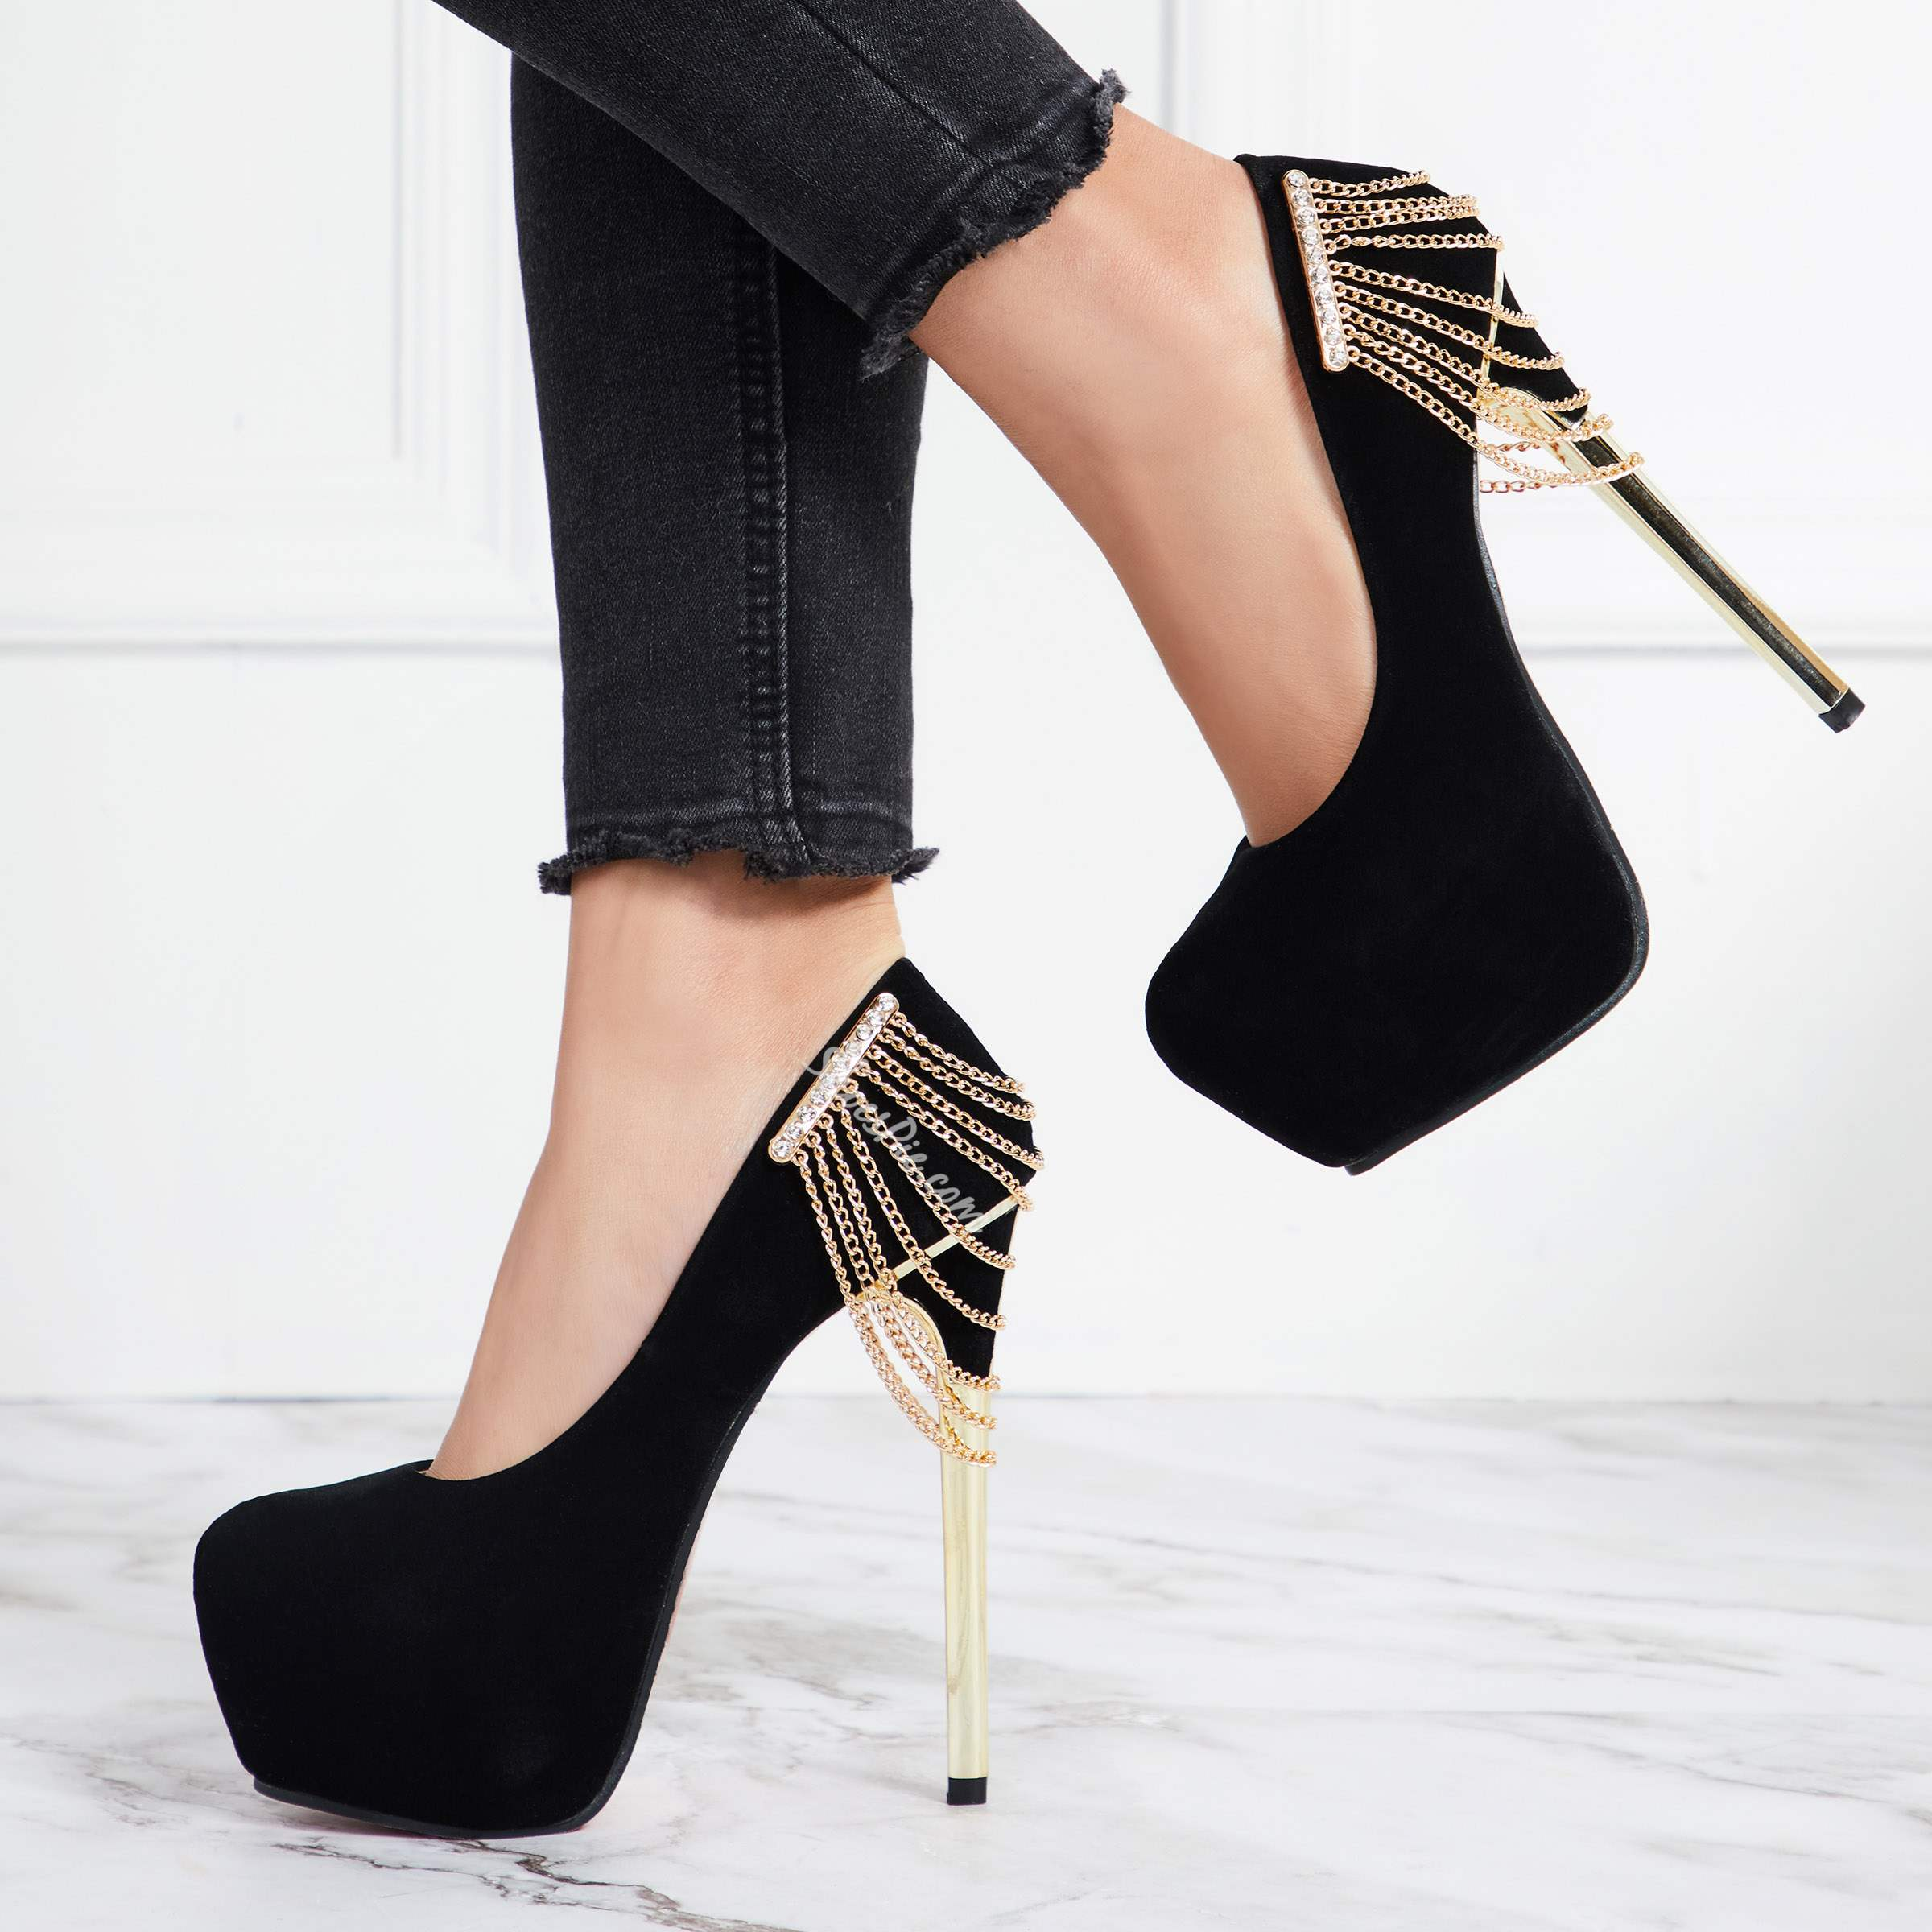 Shoespie Chain Casual Platform Stiletto Heels